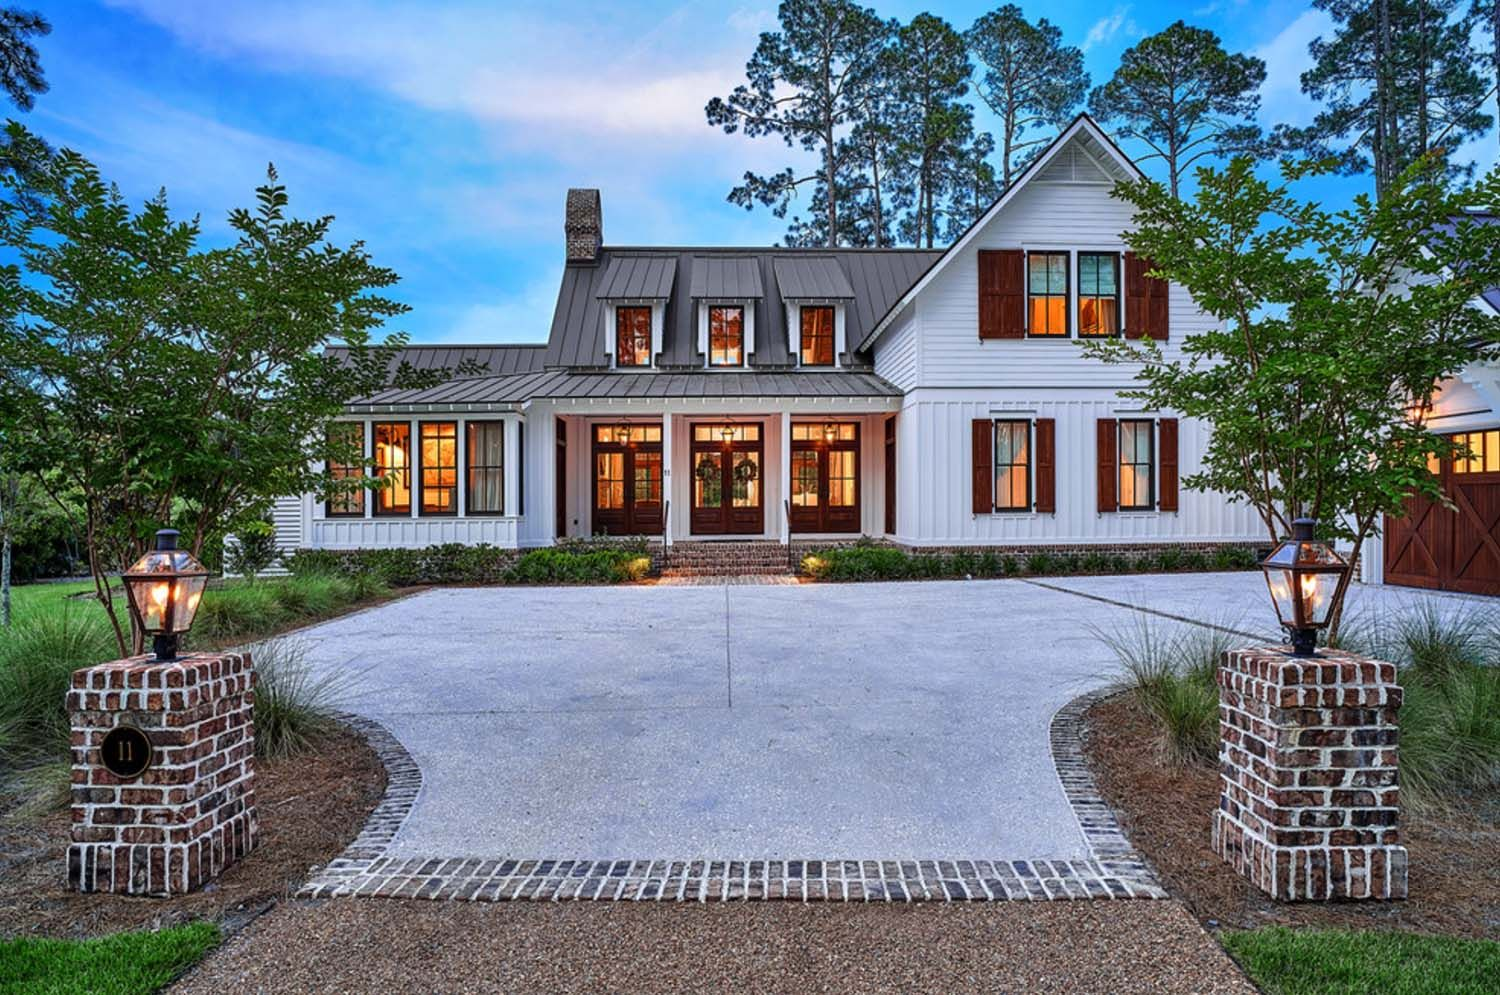 Exquisite South Carolina Farmhouse Evoking A Low Country Style Modern Farmhouse Exterior House Designs Exterior Farmhouse Exterior